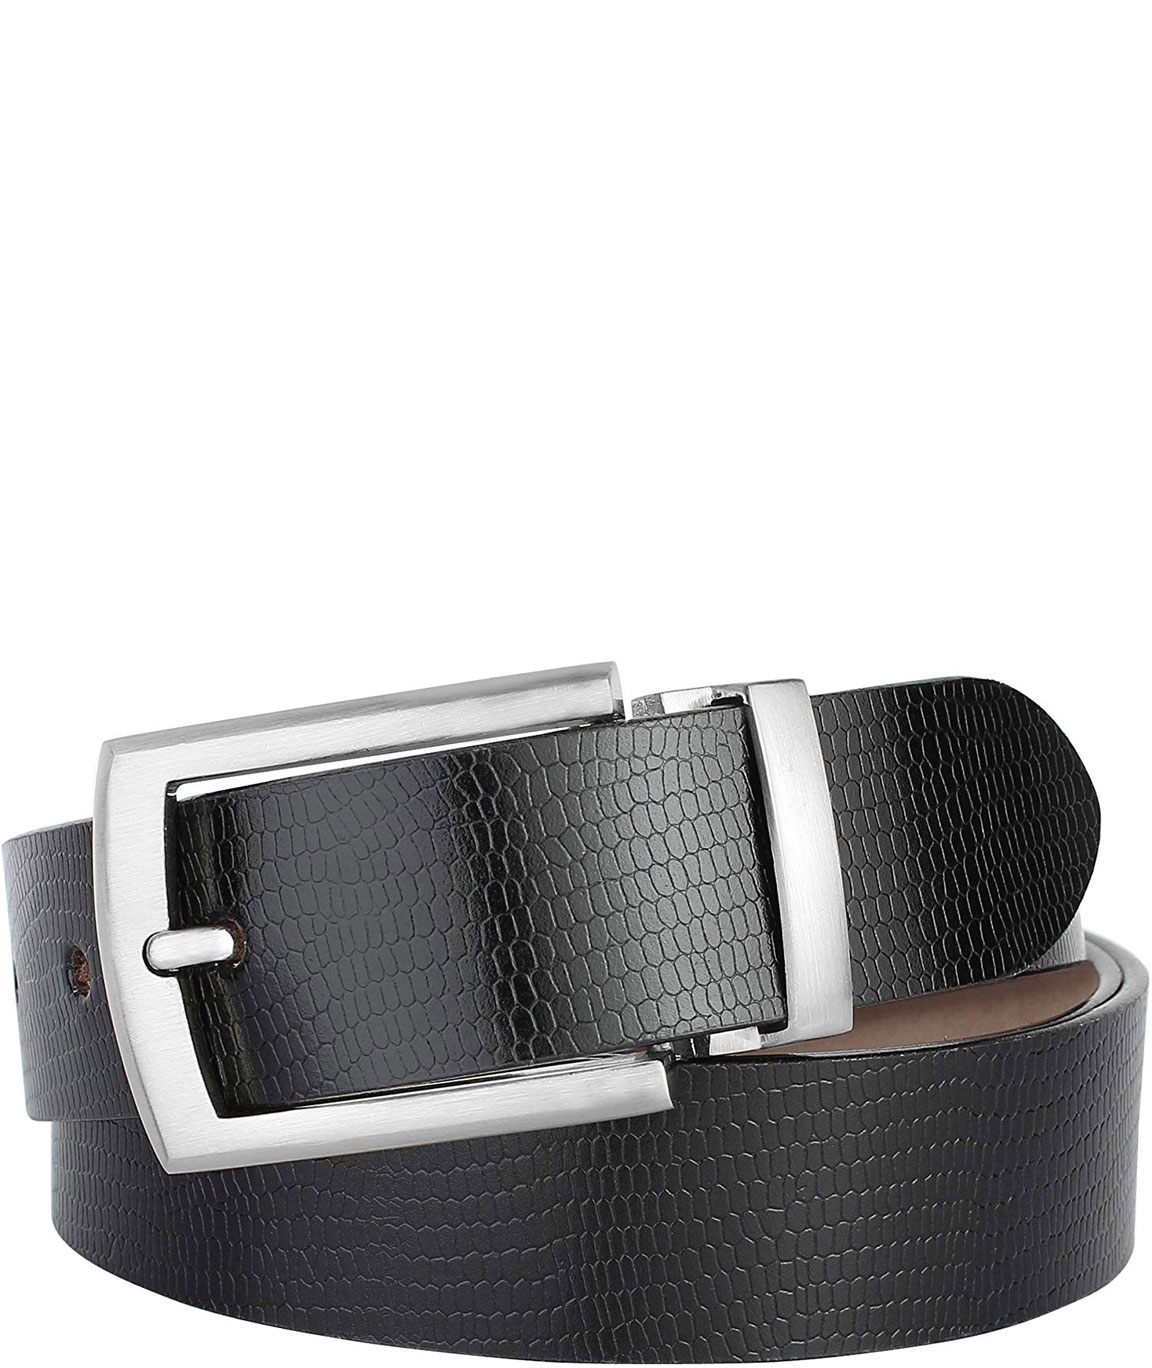 ZORO Men`s Genuine Leather Belt, (1 Year Guarantee) - belts for mens - belts for men casual stylish leather- belts for men formal branded, mens belt, black and brown belt, formal belt RT-04